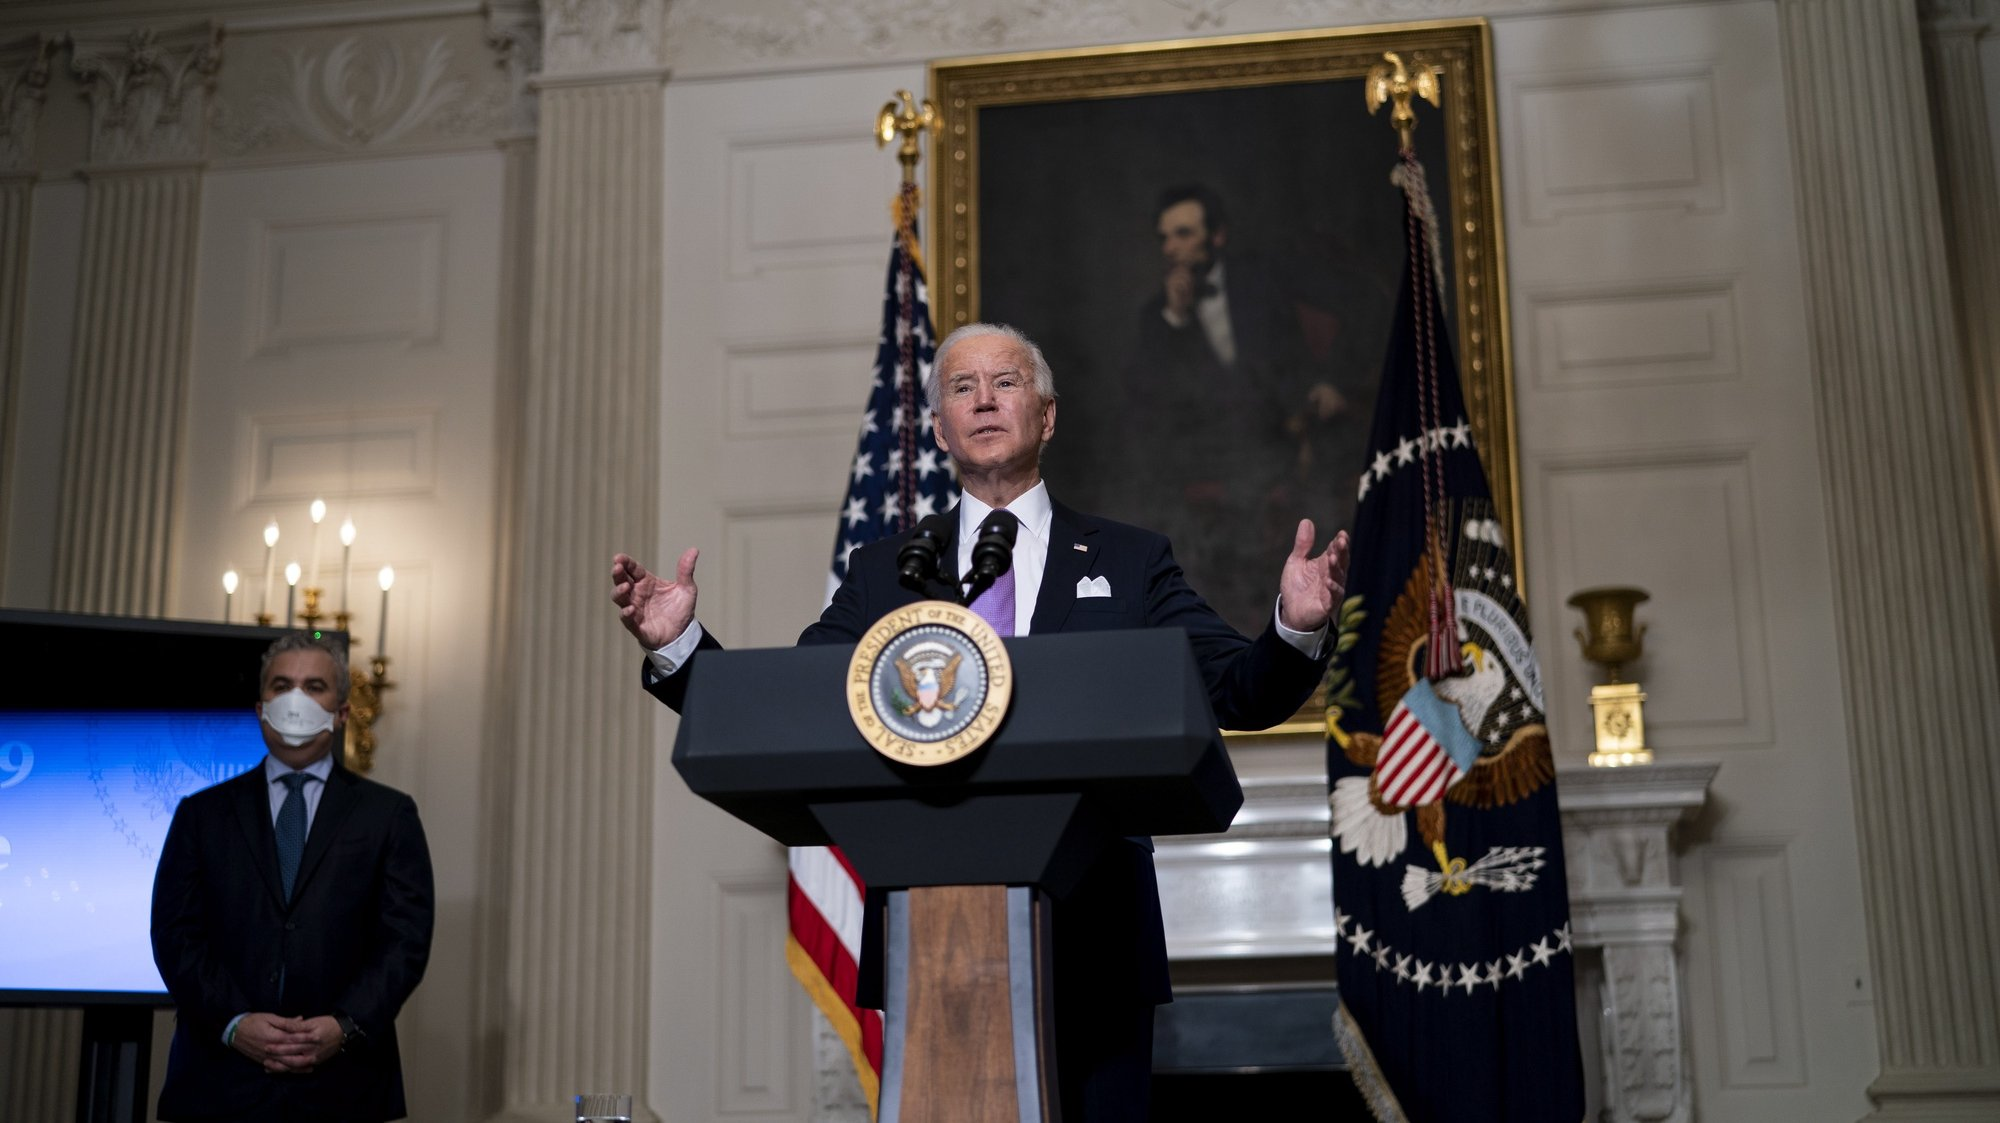 epa08967622 US President Joe Biden delivers remarks on the fight to contain the COVID-19 pandemic in the State Dining Room of the White House, in Washington, DC, USA, 26 January 2021. With Biden is COVID-19 task force coordinator Jeff Zients.  EPA/Doug Mills / POOL